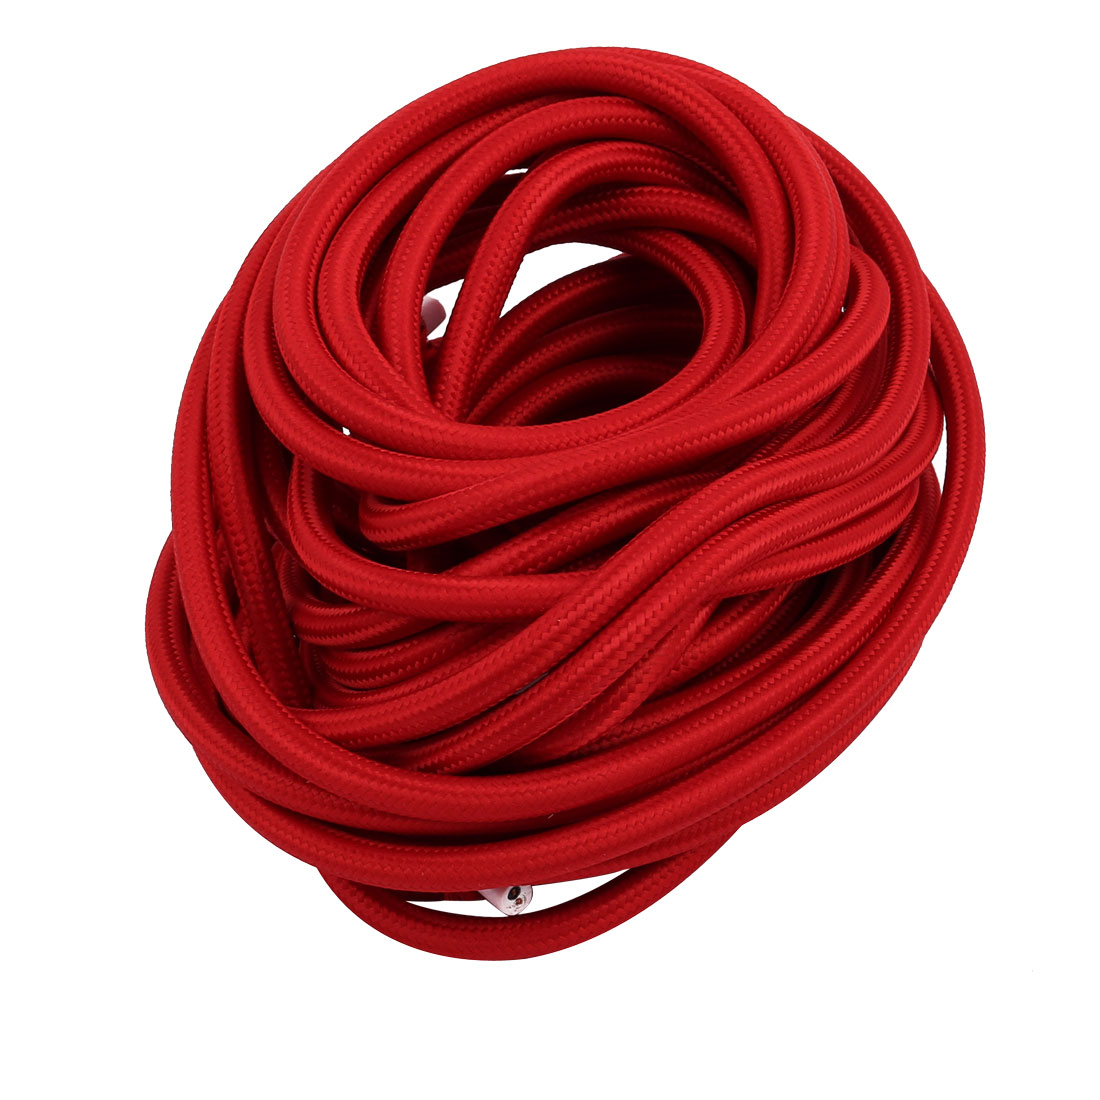 Unique Bargains VDE Dual Core Red Braided Cable Desk Lamp Power Ground Wire 8 Meters